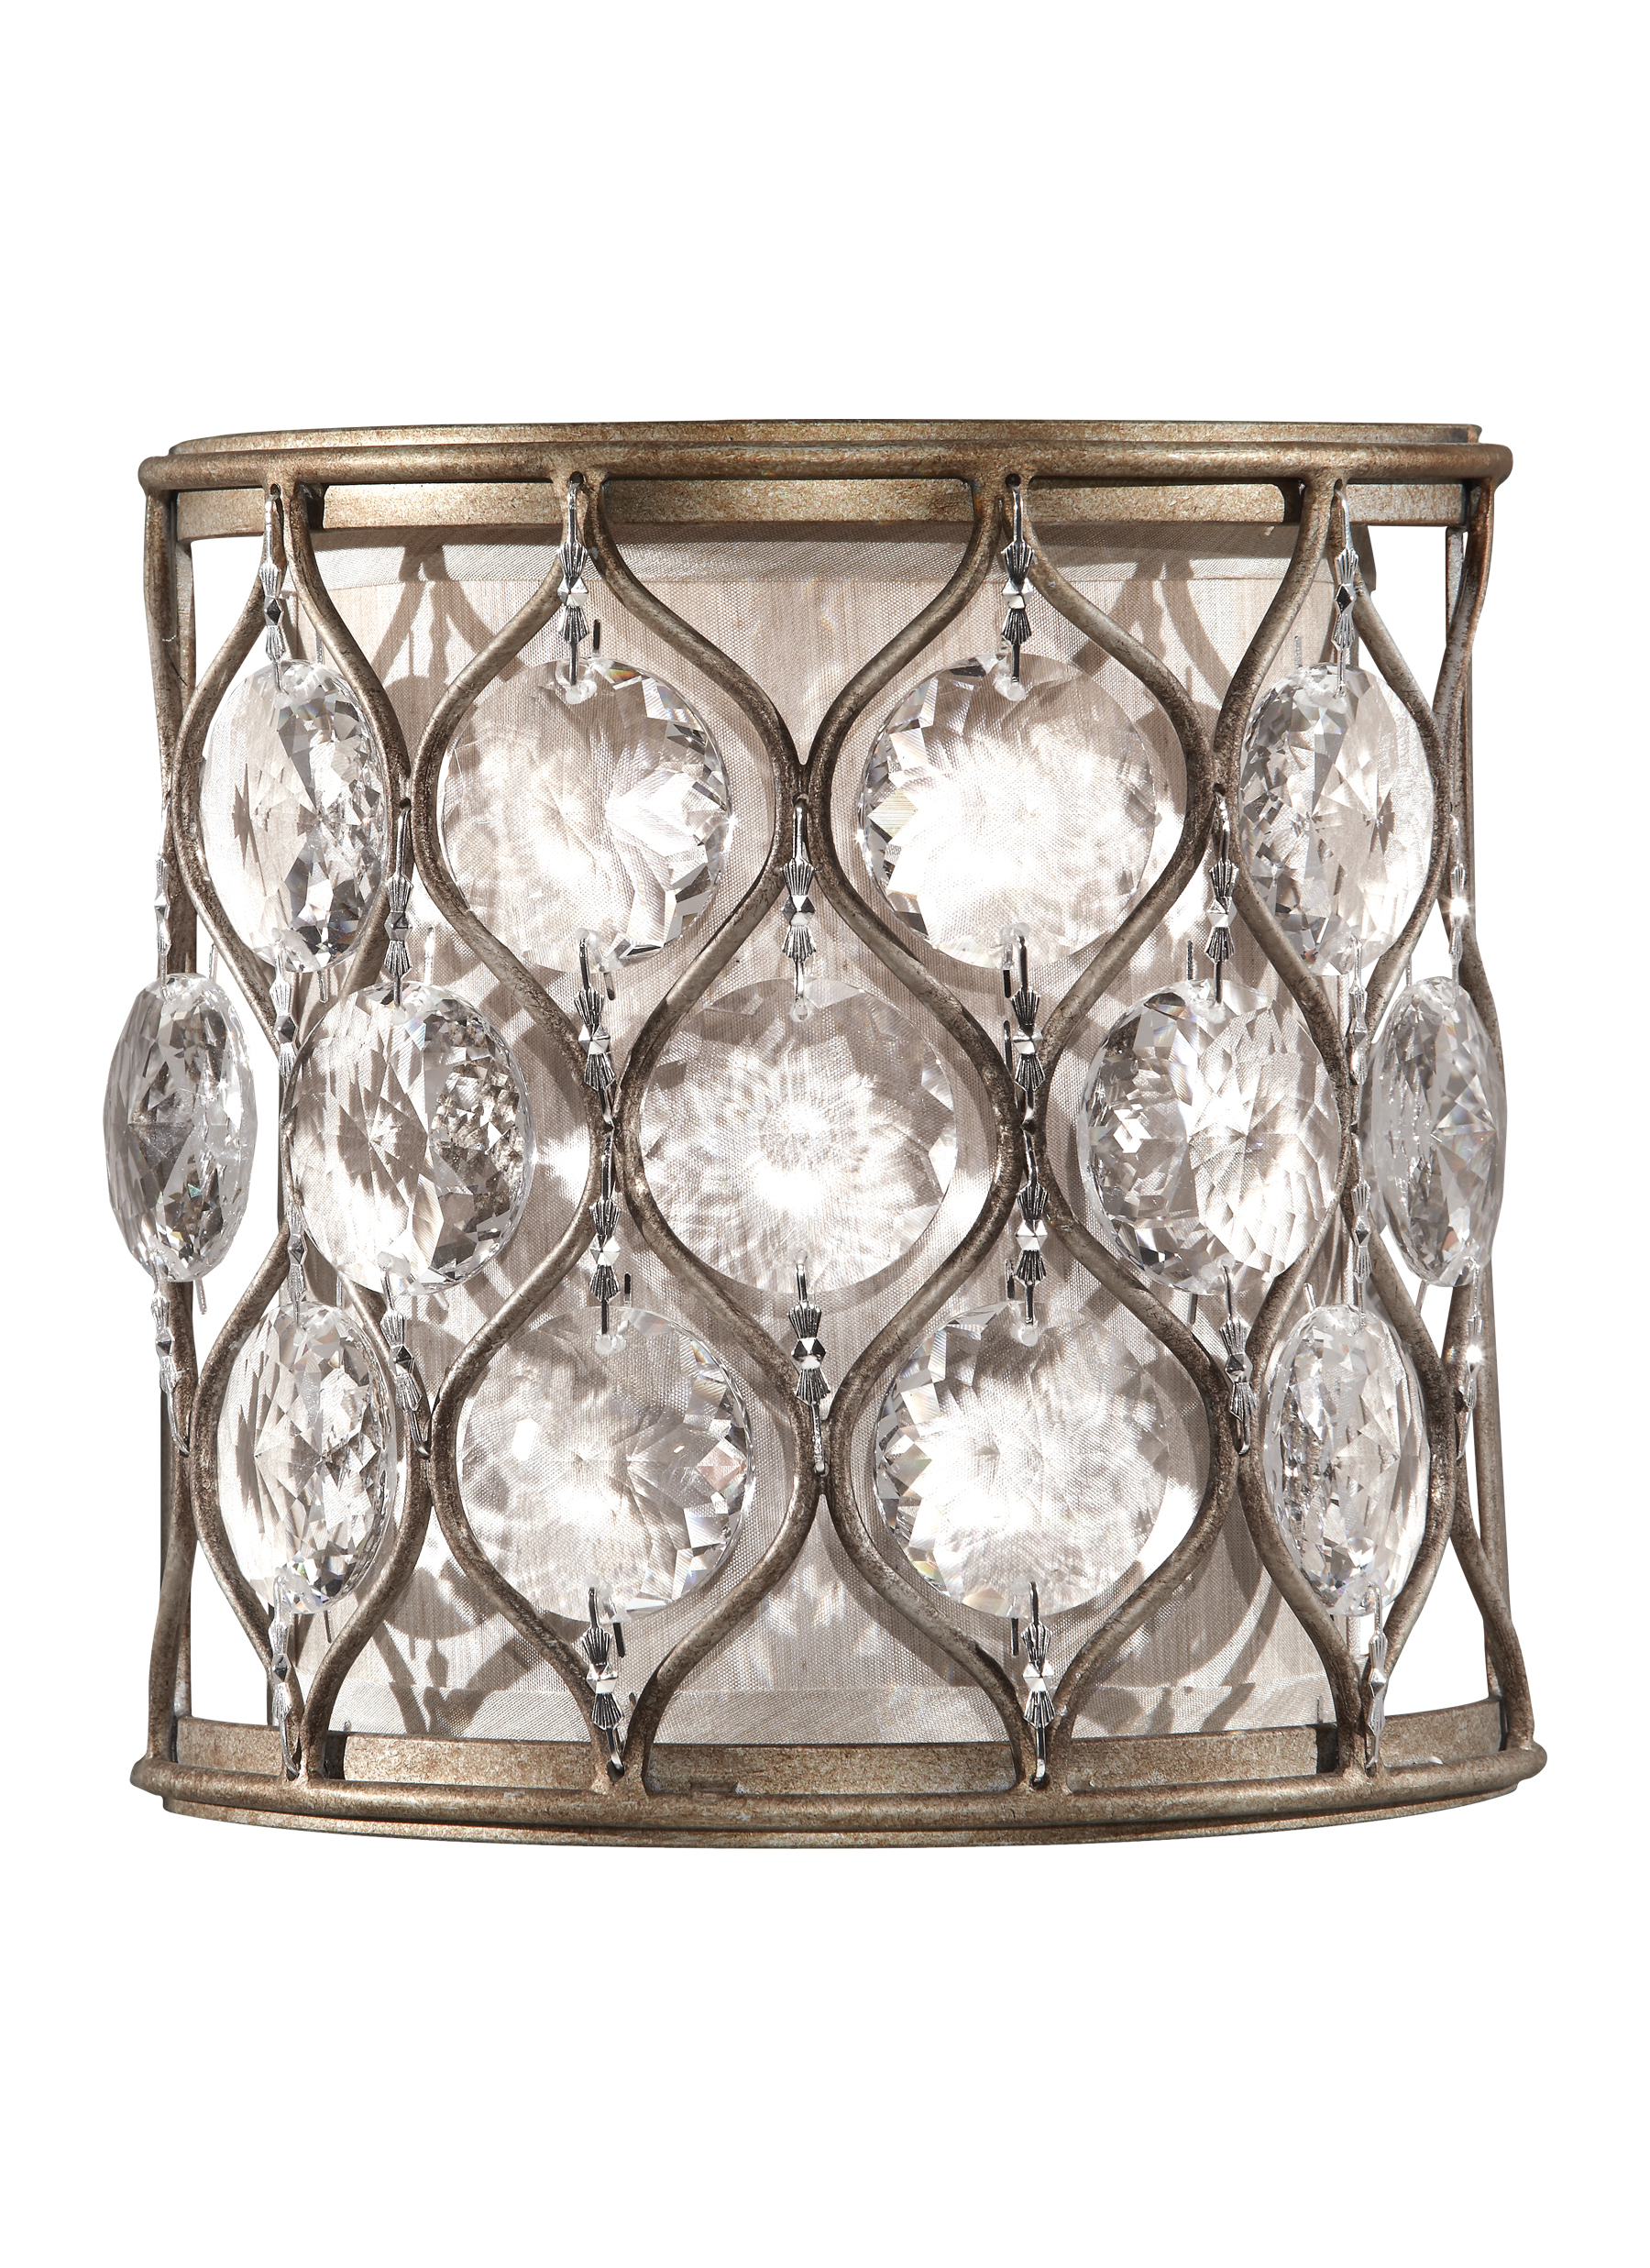 Murray Feiss | Residential Light Fixtures | Murray Feiss Chateau